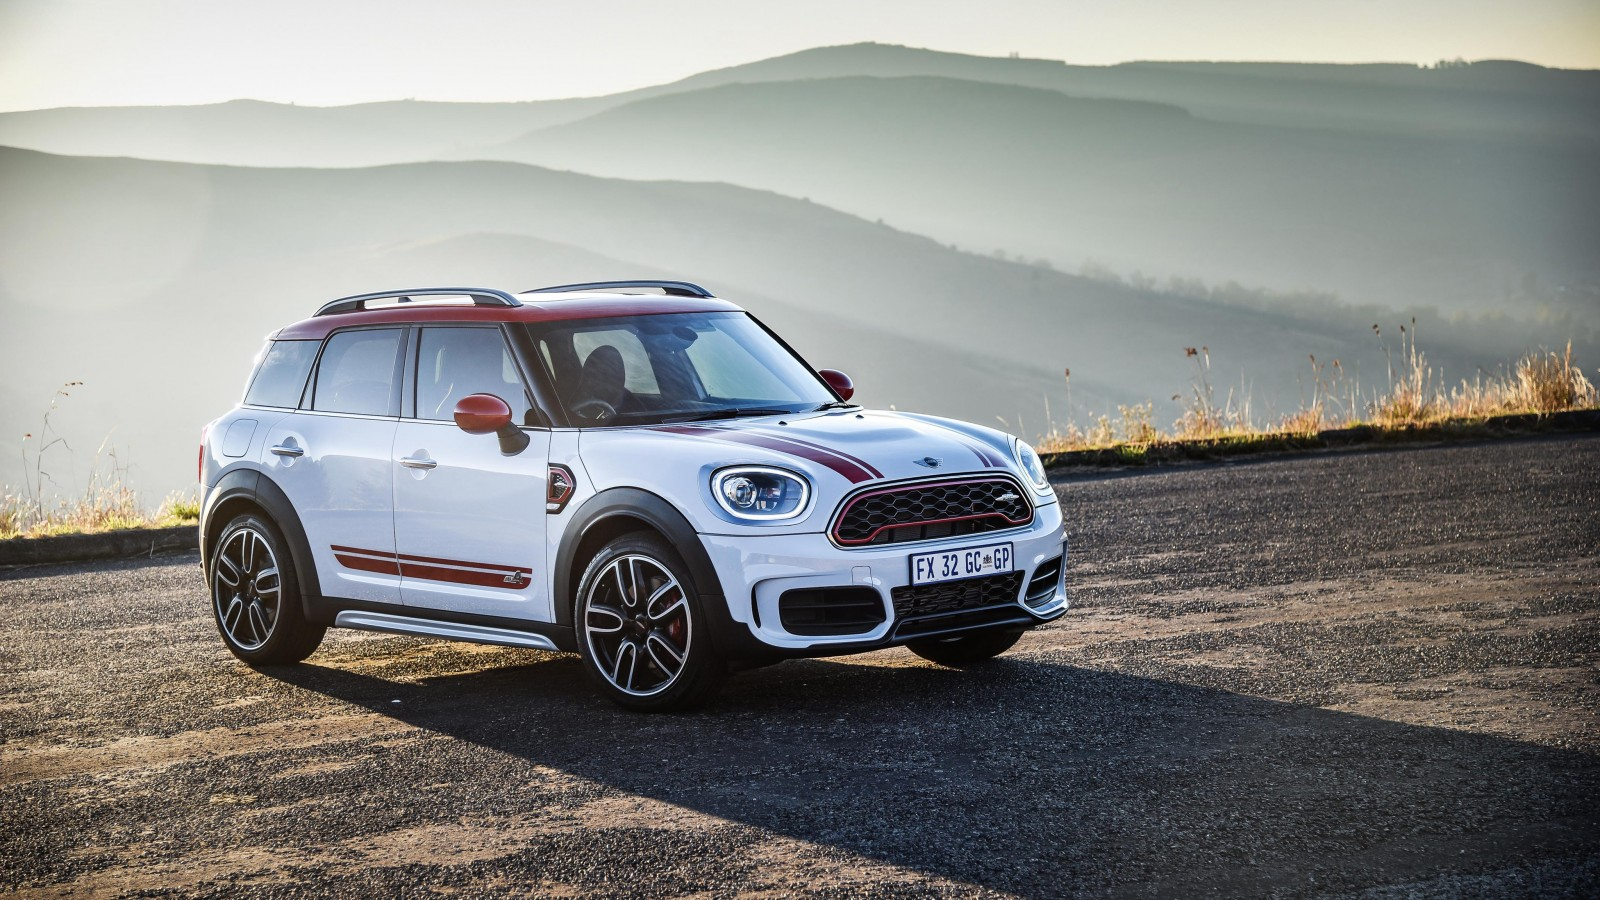 Mercedes Car Wallpapers For Windows 7 2018 Mini John Cooper Works Countryman 4k Wallpaper Hd